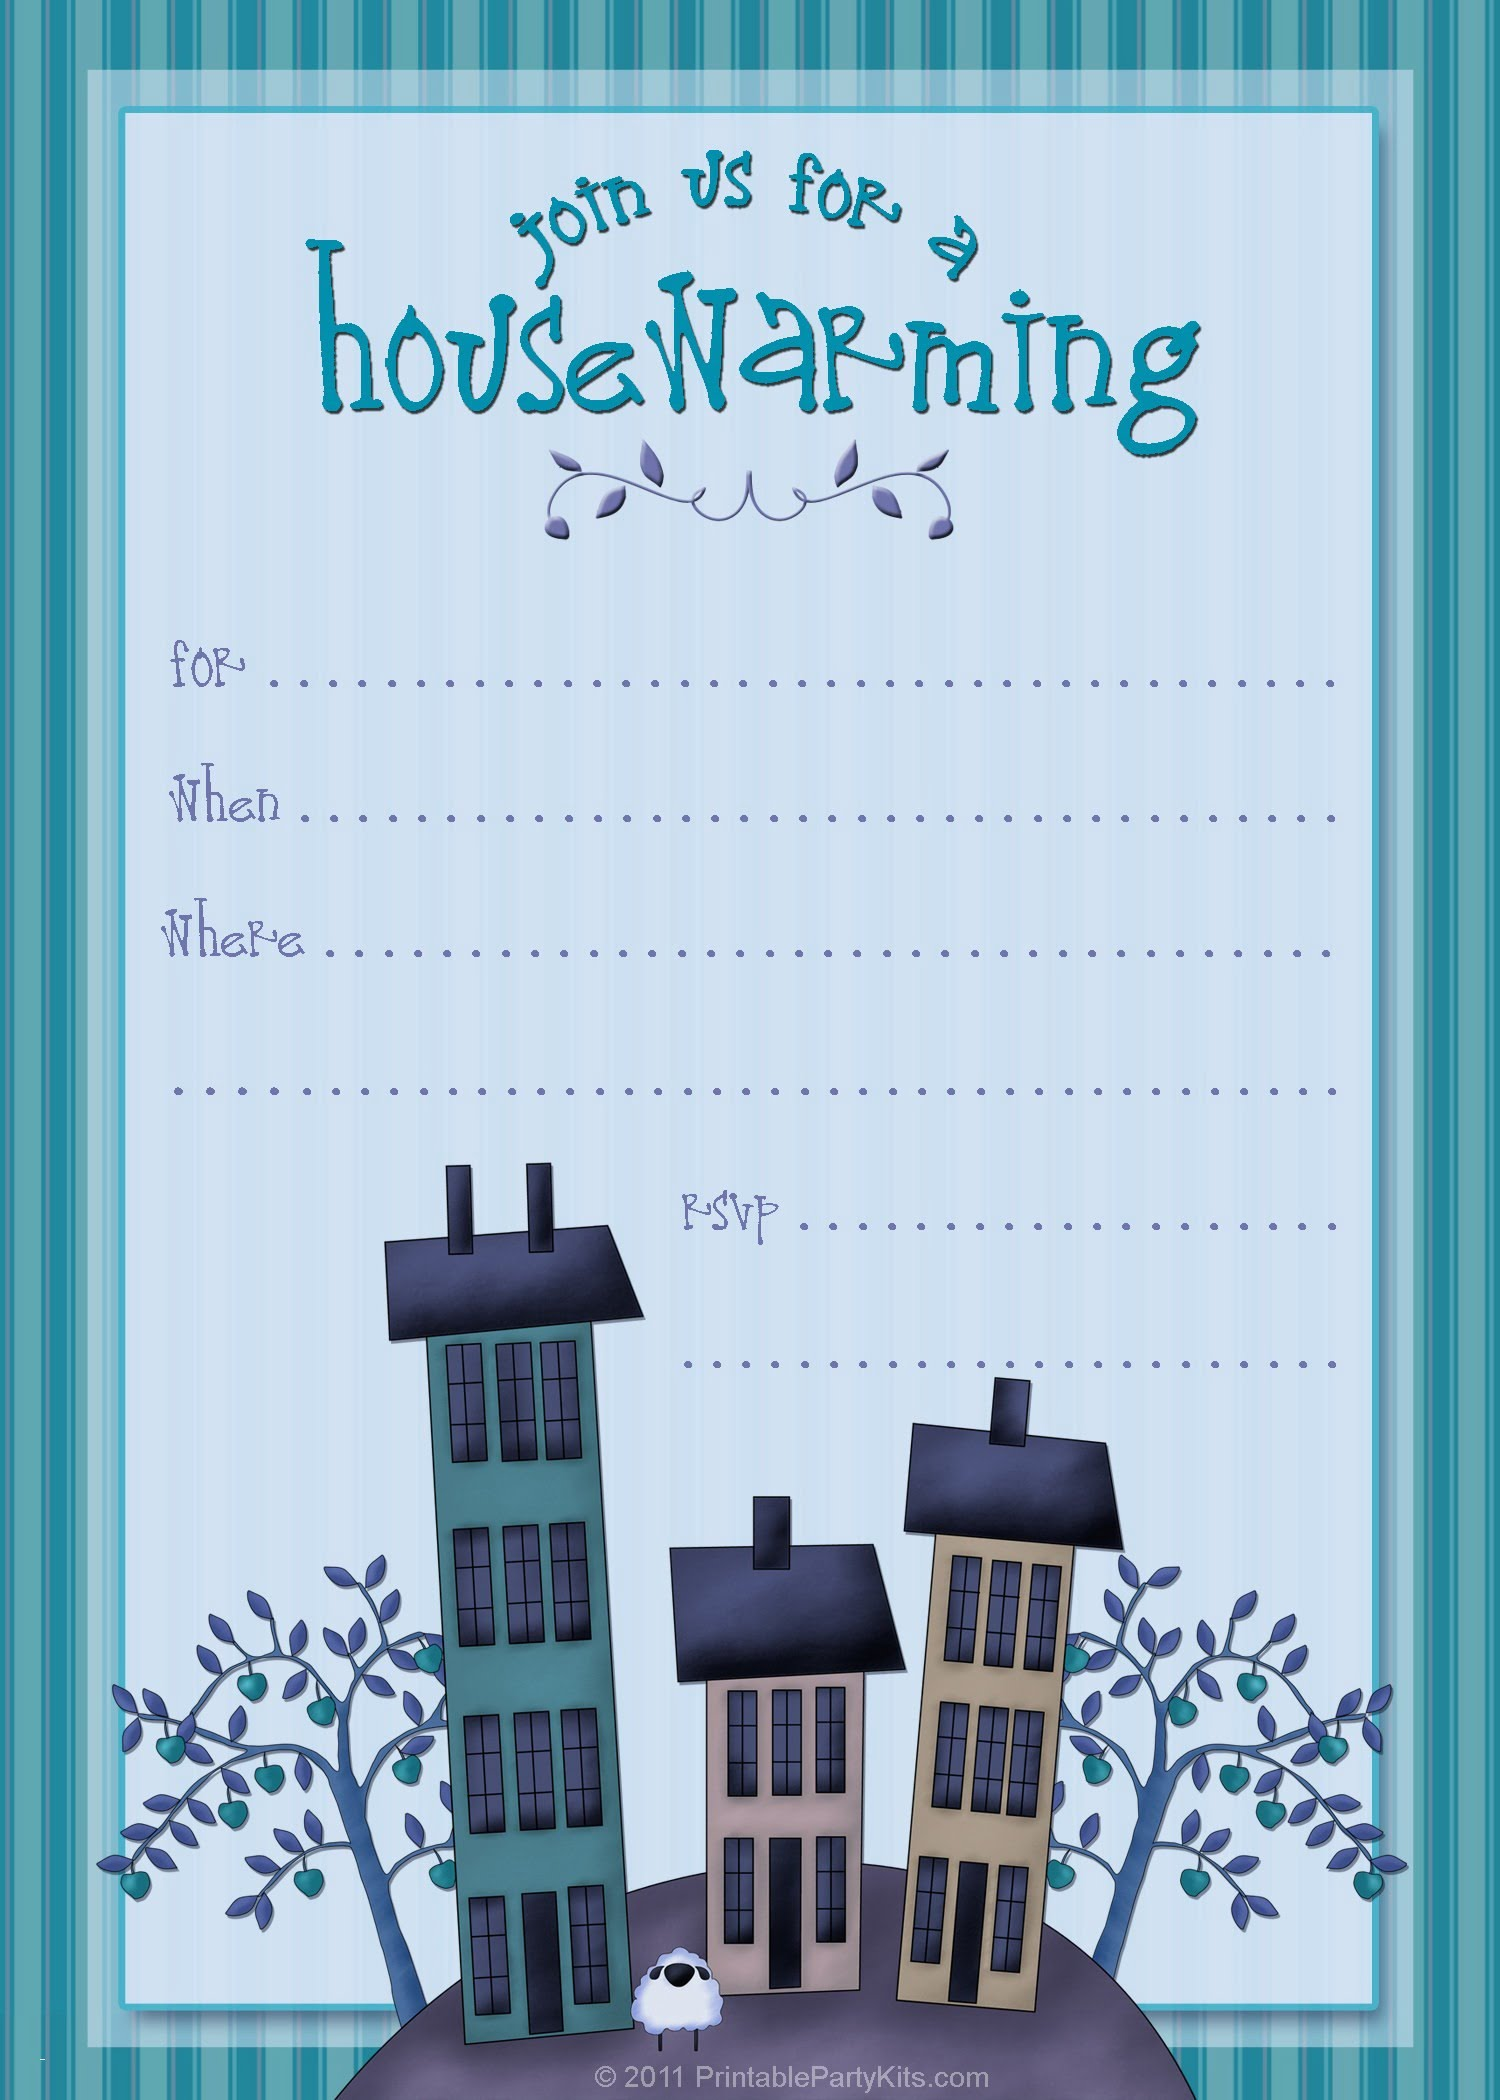 Free Housewarming Party Invitation Template Inspirational With